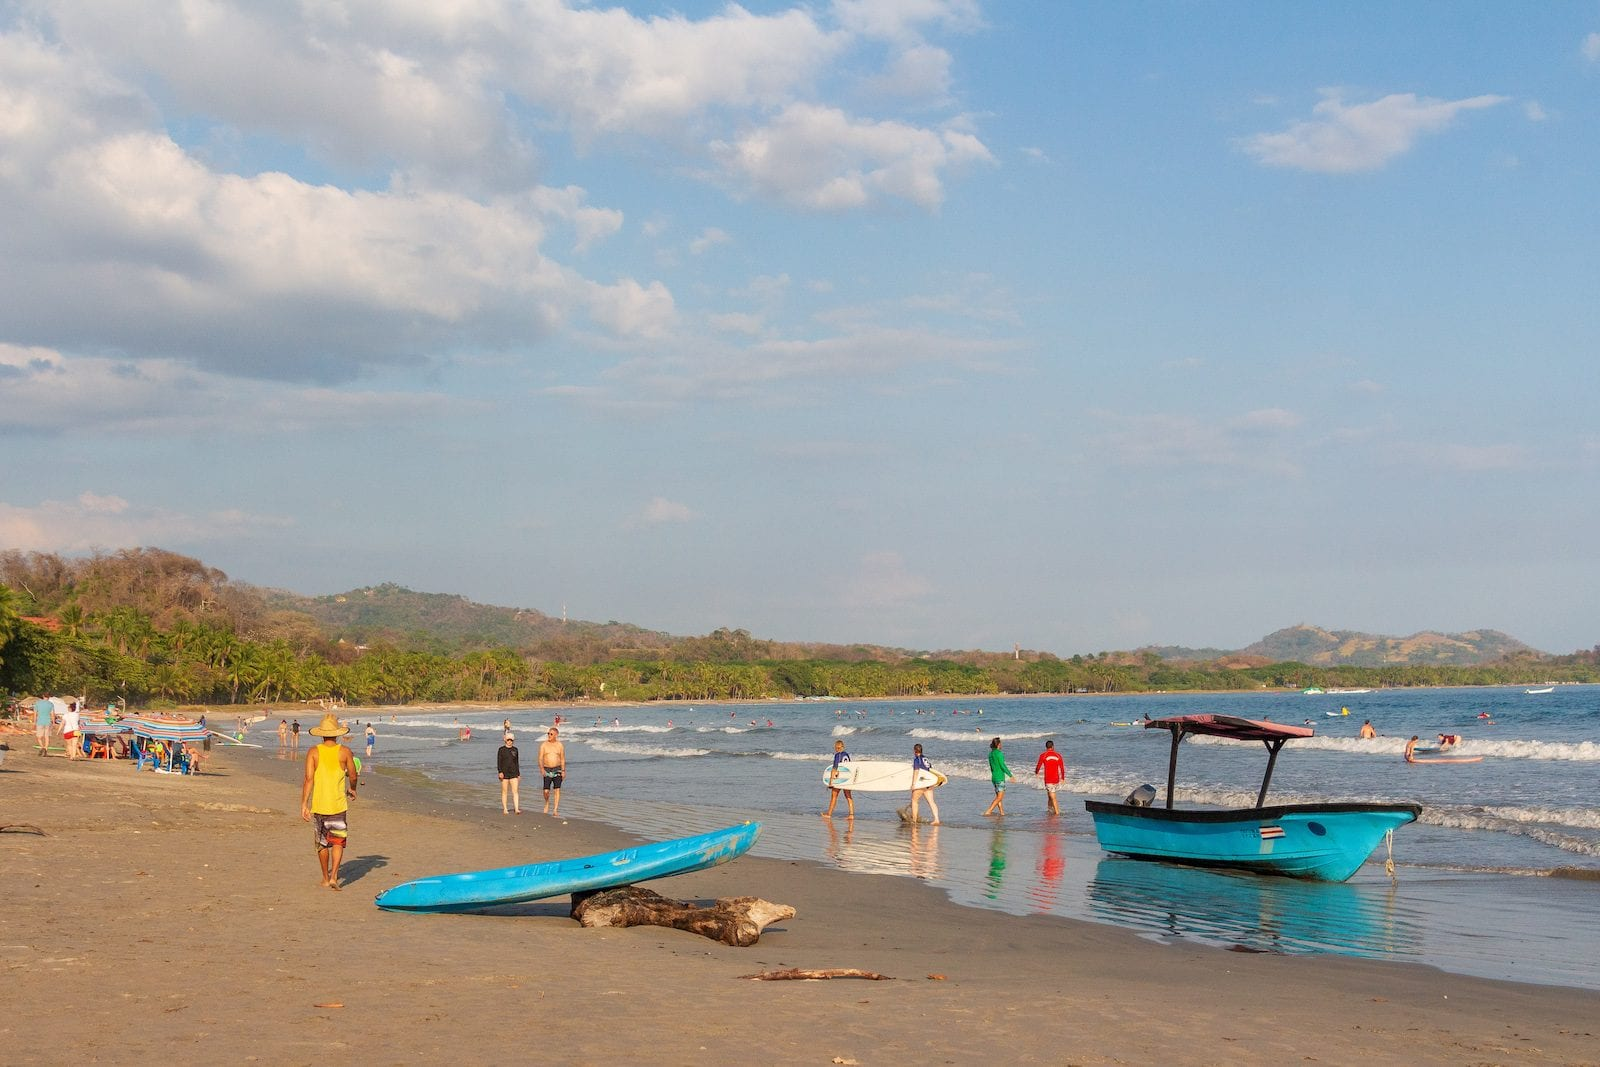 Section of Samara beach where boats launch and surfboarders surf, Costa Rica